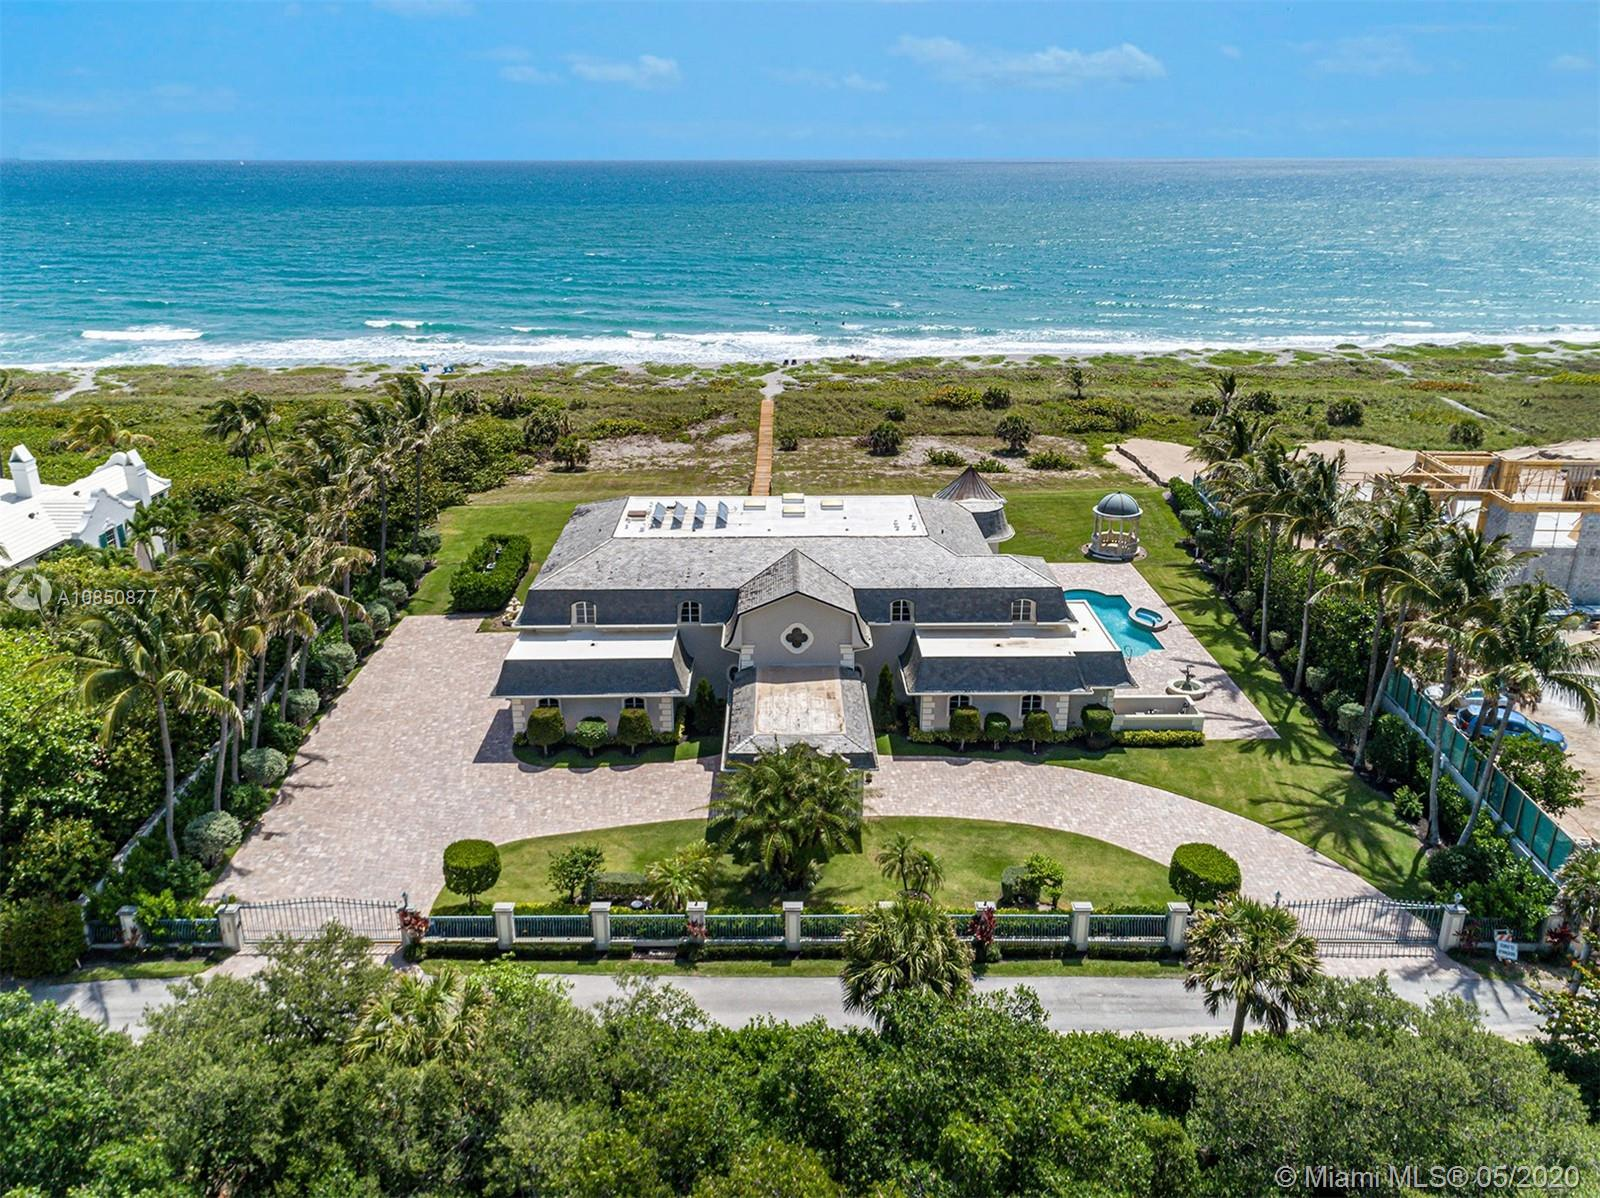 Spectacular oceanfront estate located on 2.62 acres on the south end of stunning Jupiter Island! A p